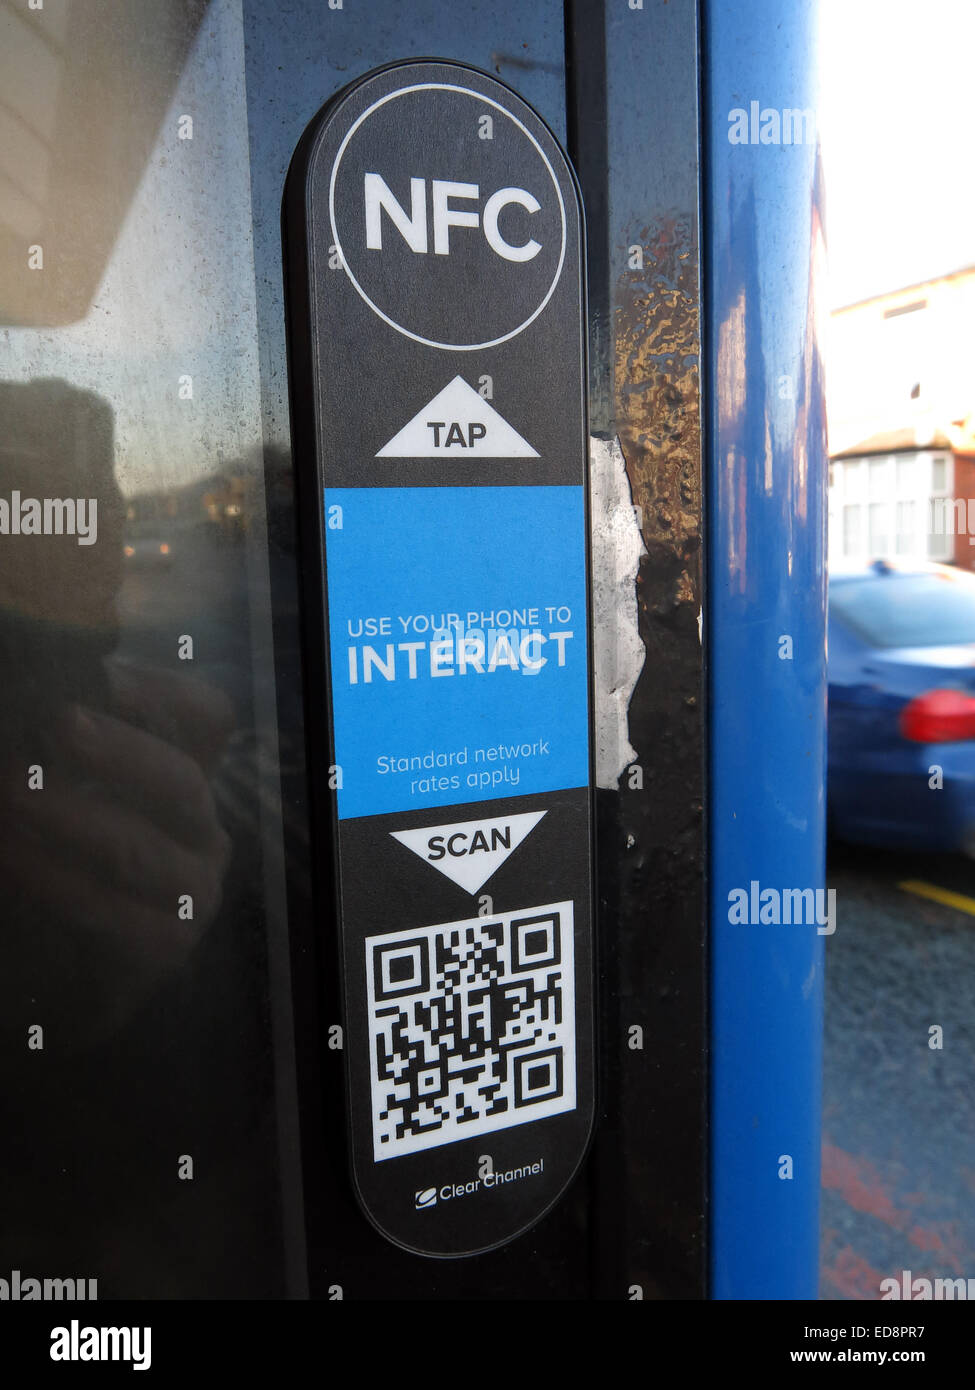 ClearChannel bus shelter ad,Grappenhall,Warrington,Cheshire,England,UK,scan,QR,reader,code,use,your,phone,to,interact,smart,smartphone,tech,technology,emerging,advertising,advertise,tap,radio,target,(acting,like,a,credential),NFC initiator (as a reader) and NFC peer to interact,GoTonySmith,blue,black,proximity,card,technology,Channels,Mobile,Platform,brings,Metro,Channels,busstop,stop,mobile,enabled,mobile-enabled,mobileenabled,informationlink,point,scan,scanner,street,shopping,link,linked,linking